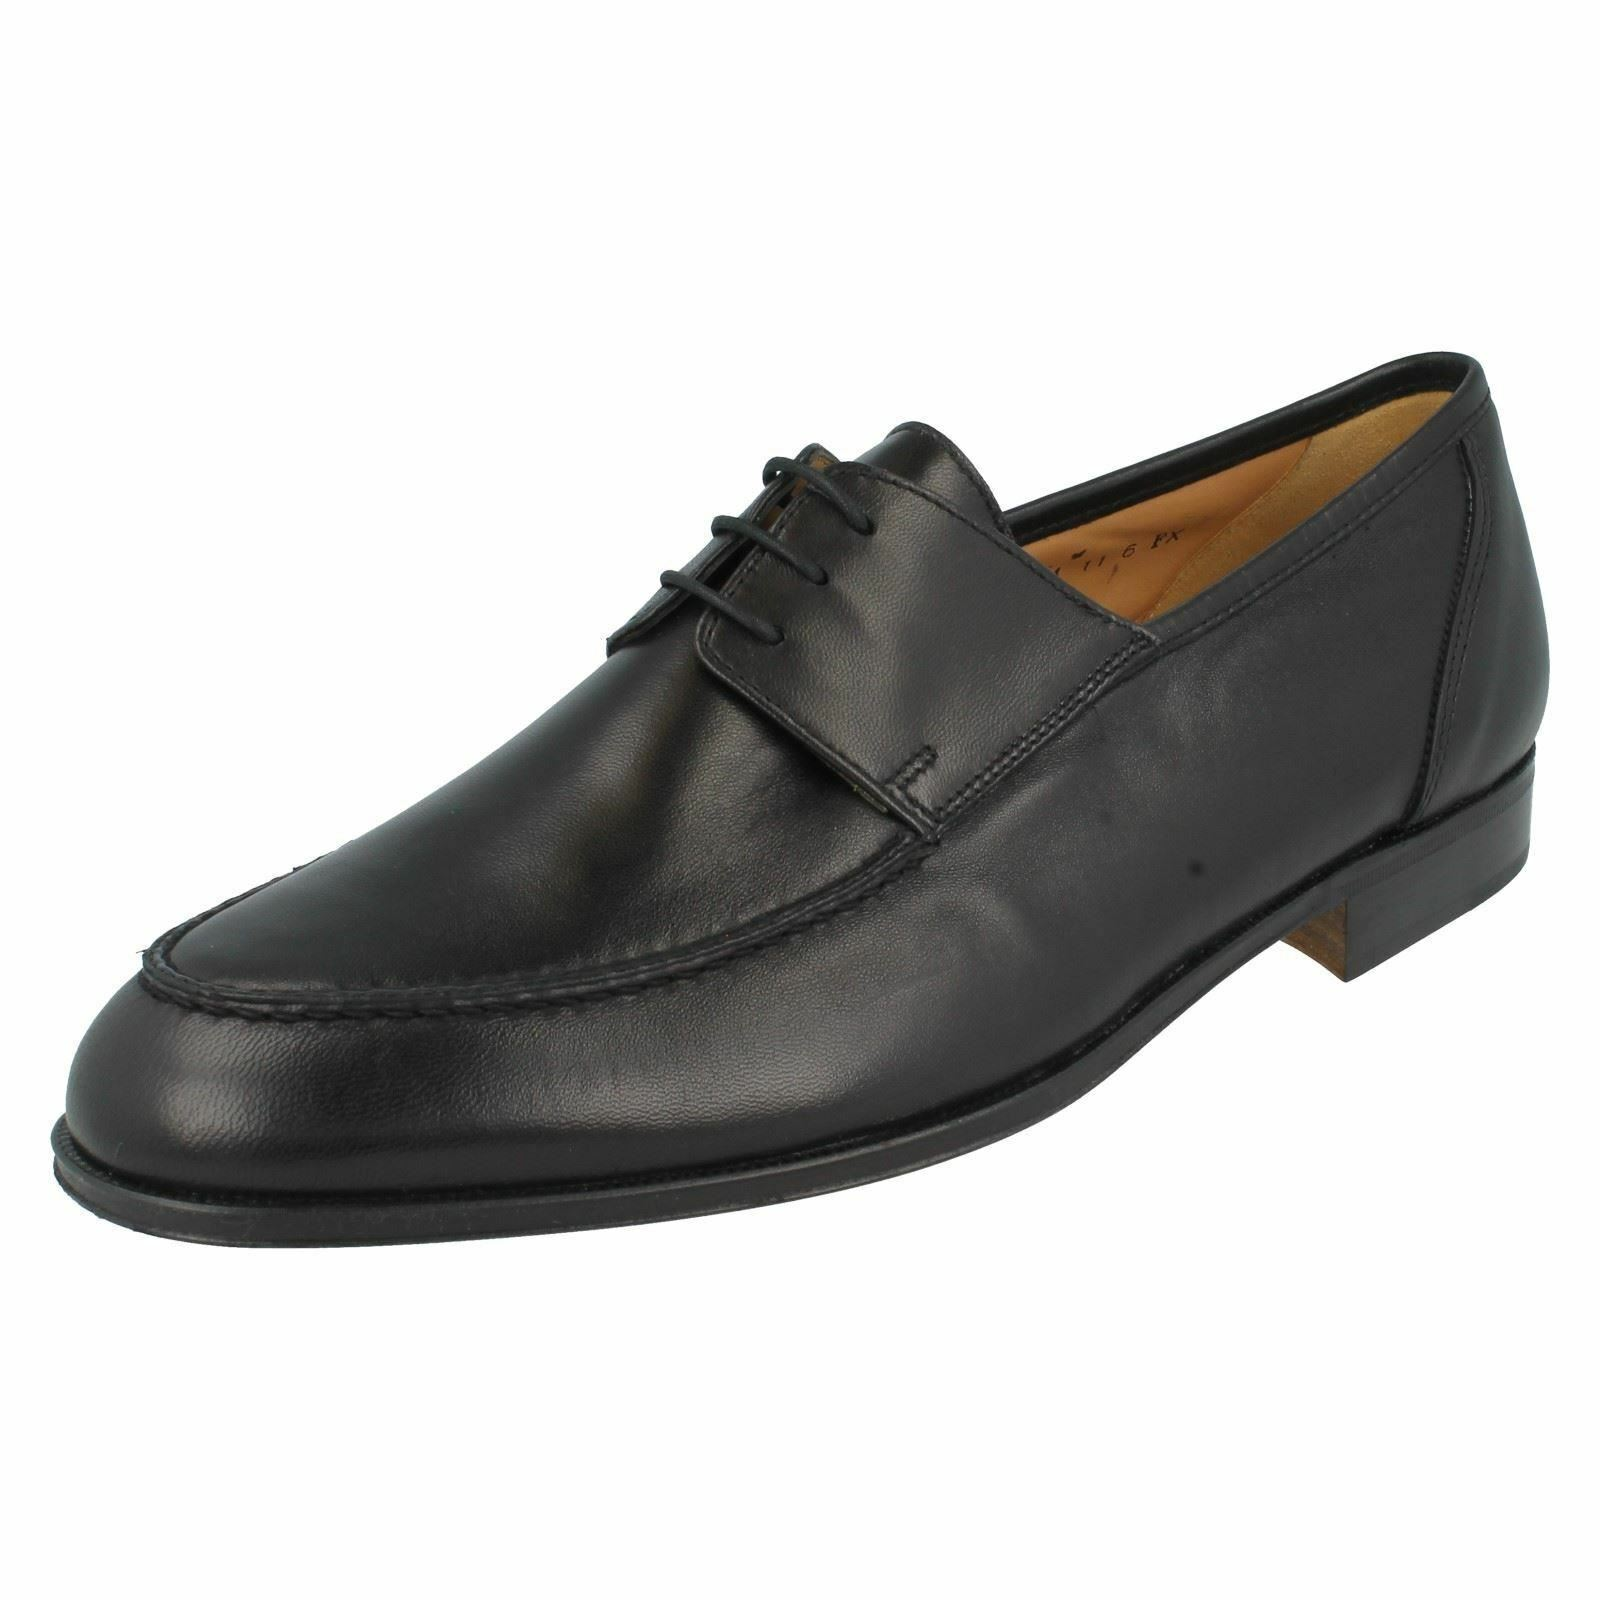 Mens FX fitting Verona black leather lace up shoe by Grenson £79.99